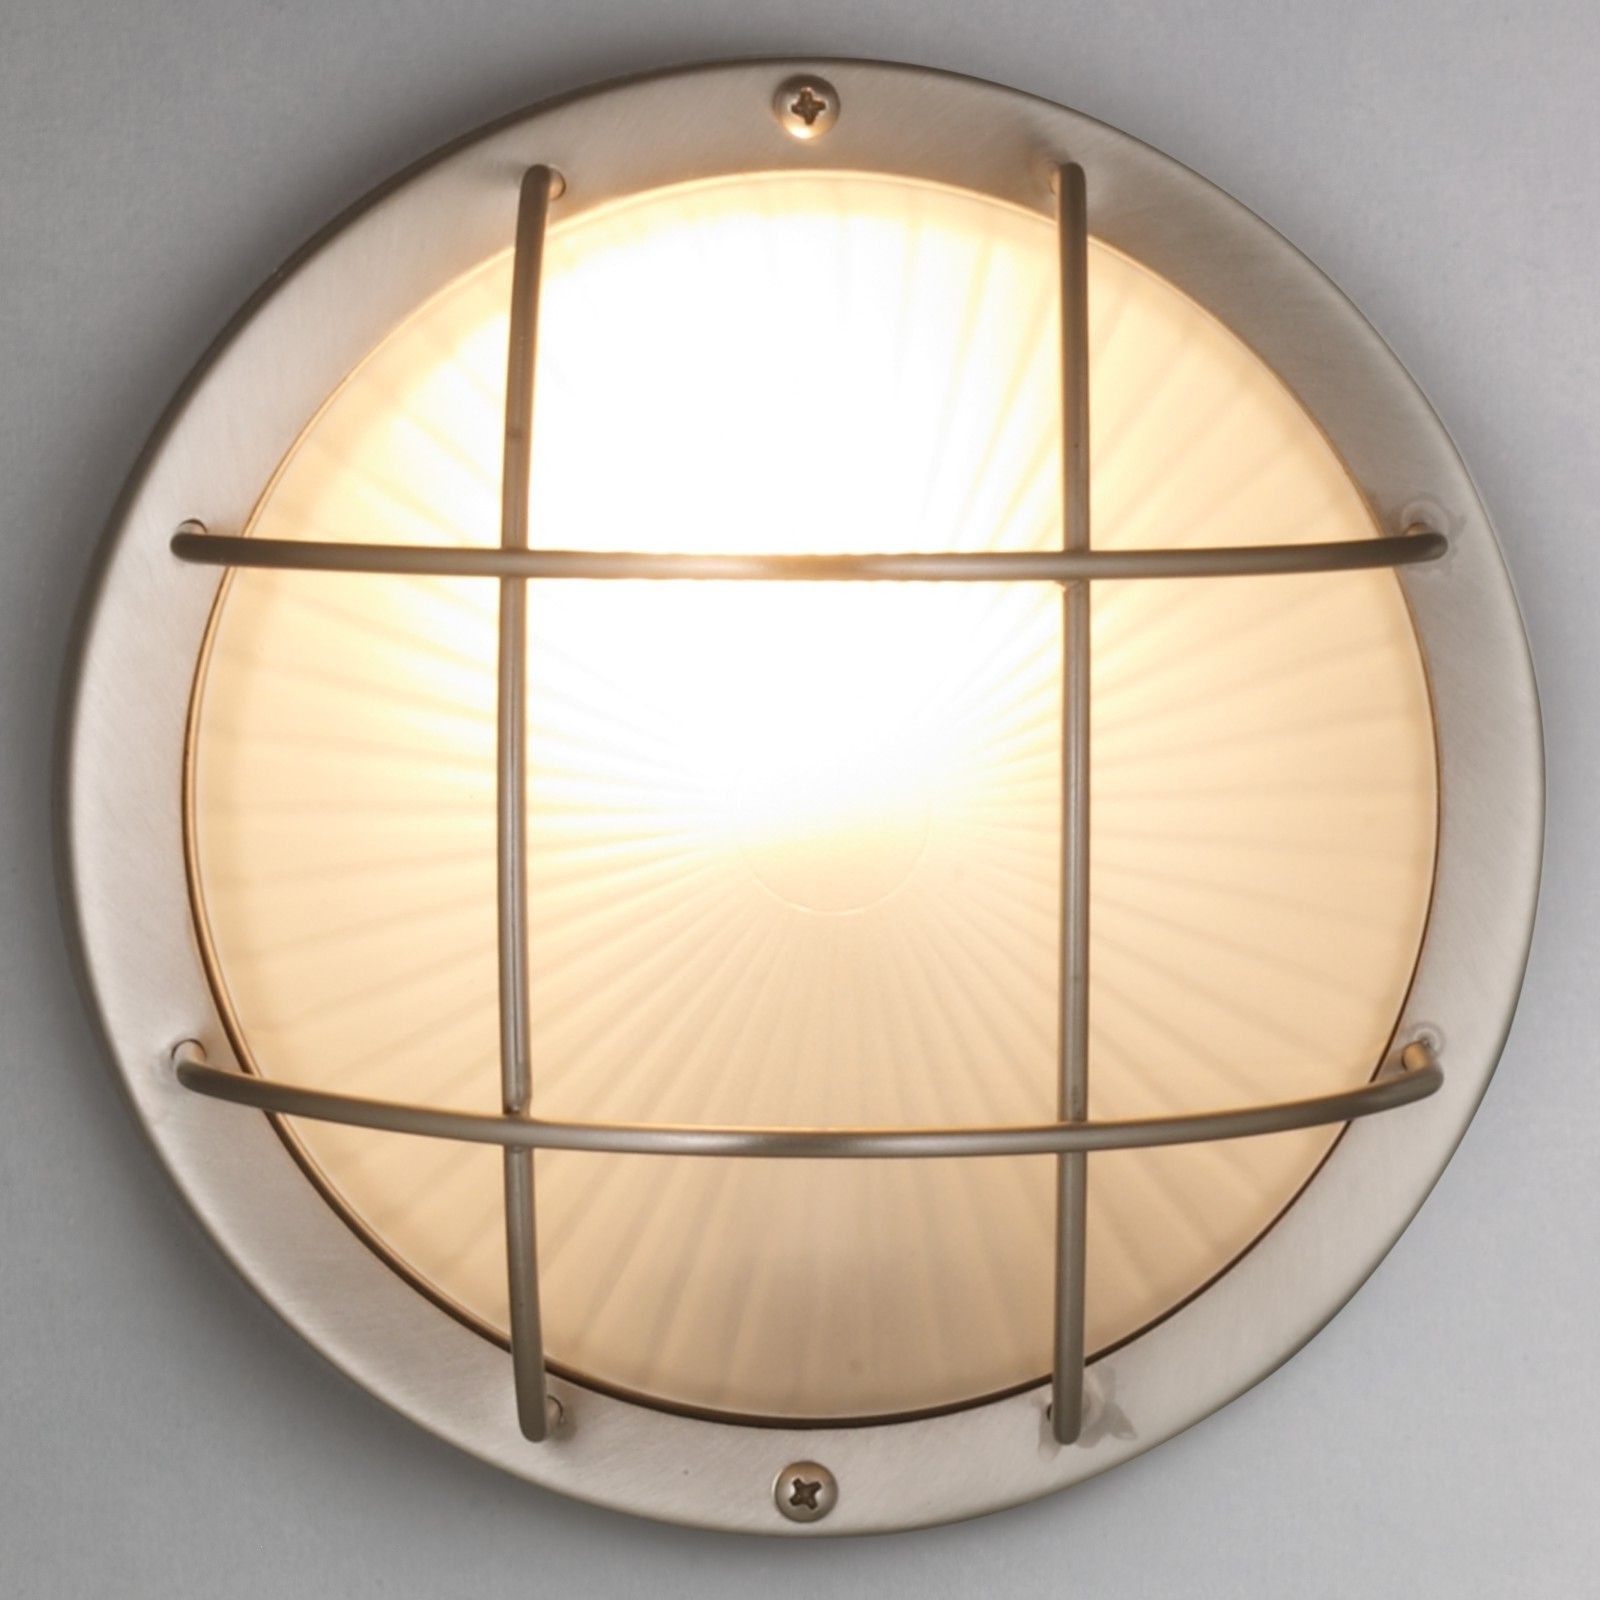 Famous Stunning John Lewis Bedroom Lights Ideas For View All Ceiling Within John Lewis Outdoor Ceiling Lights (View 5 of 20)